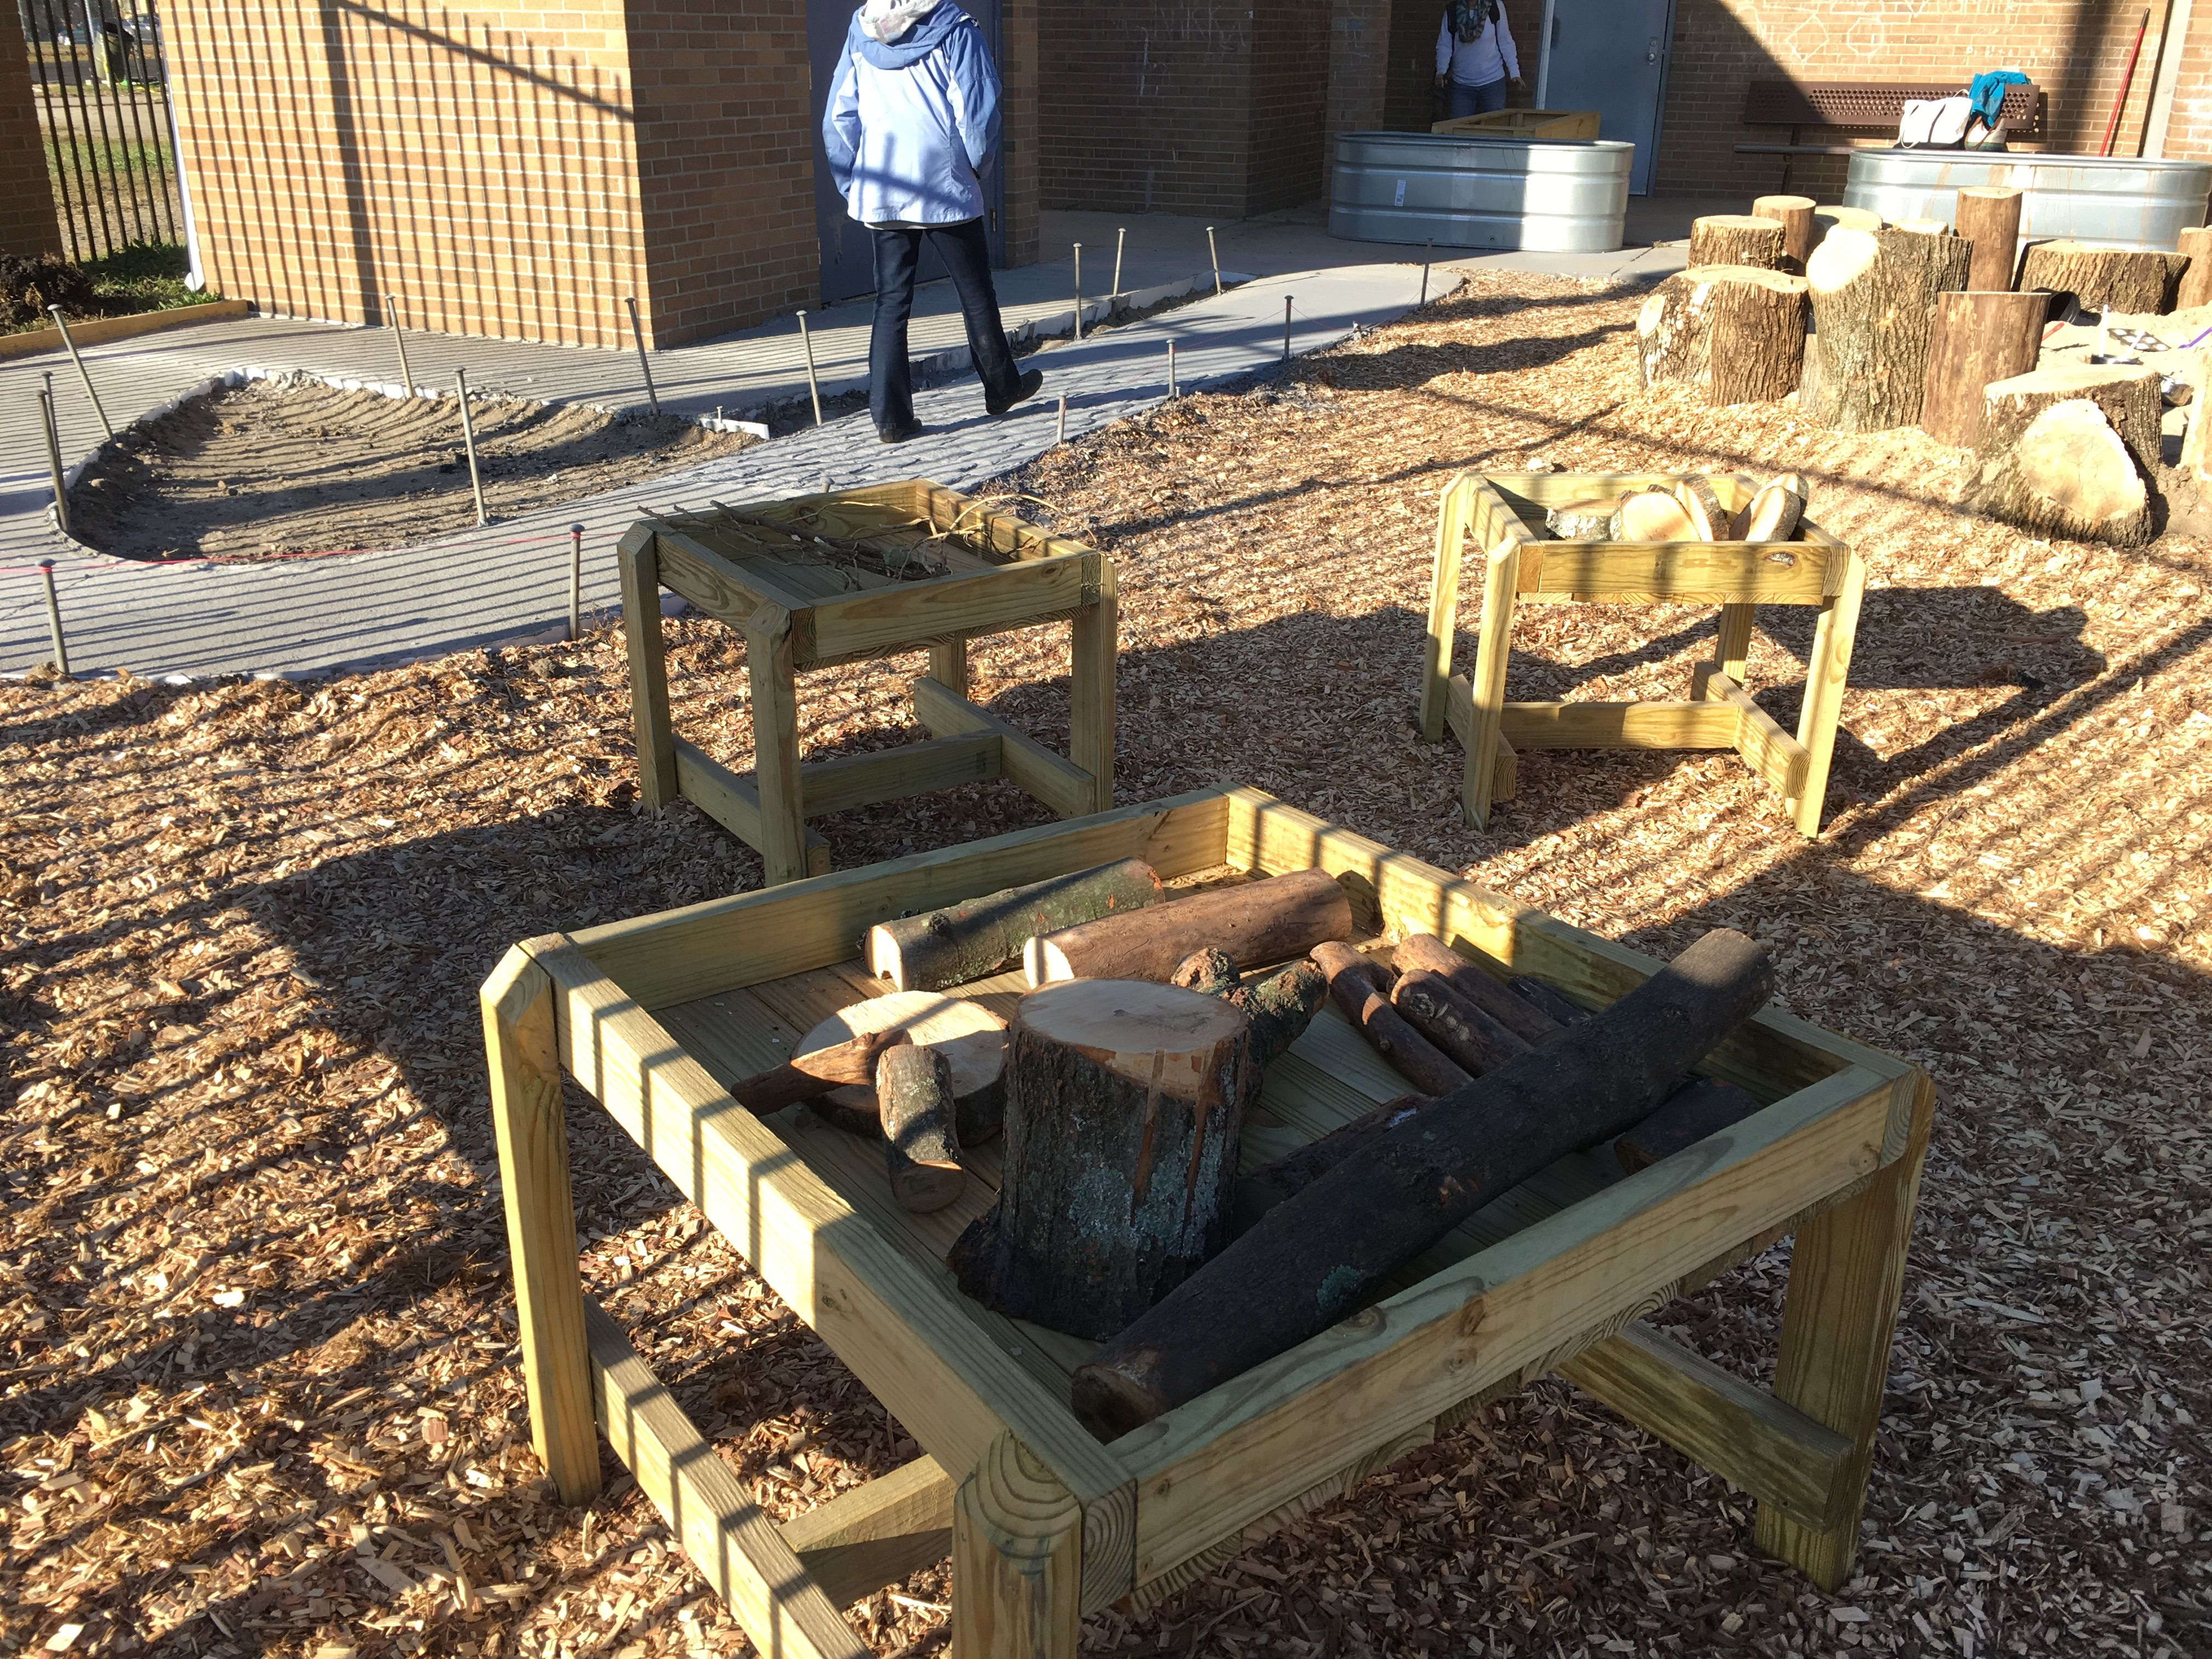 keystone natural playground small building area early childhood